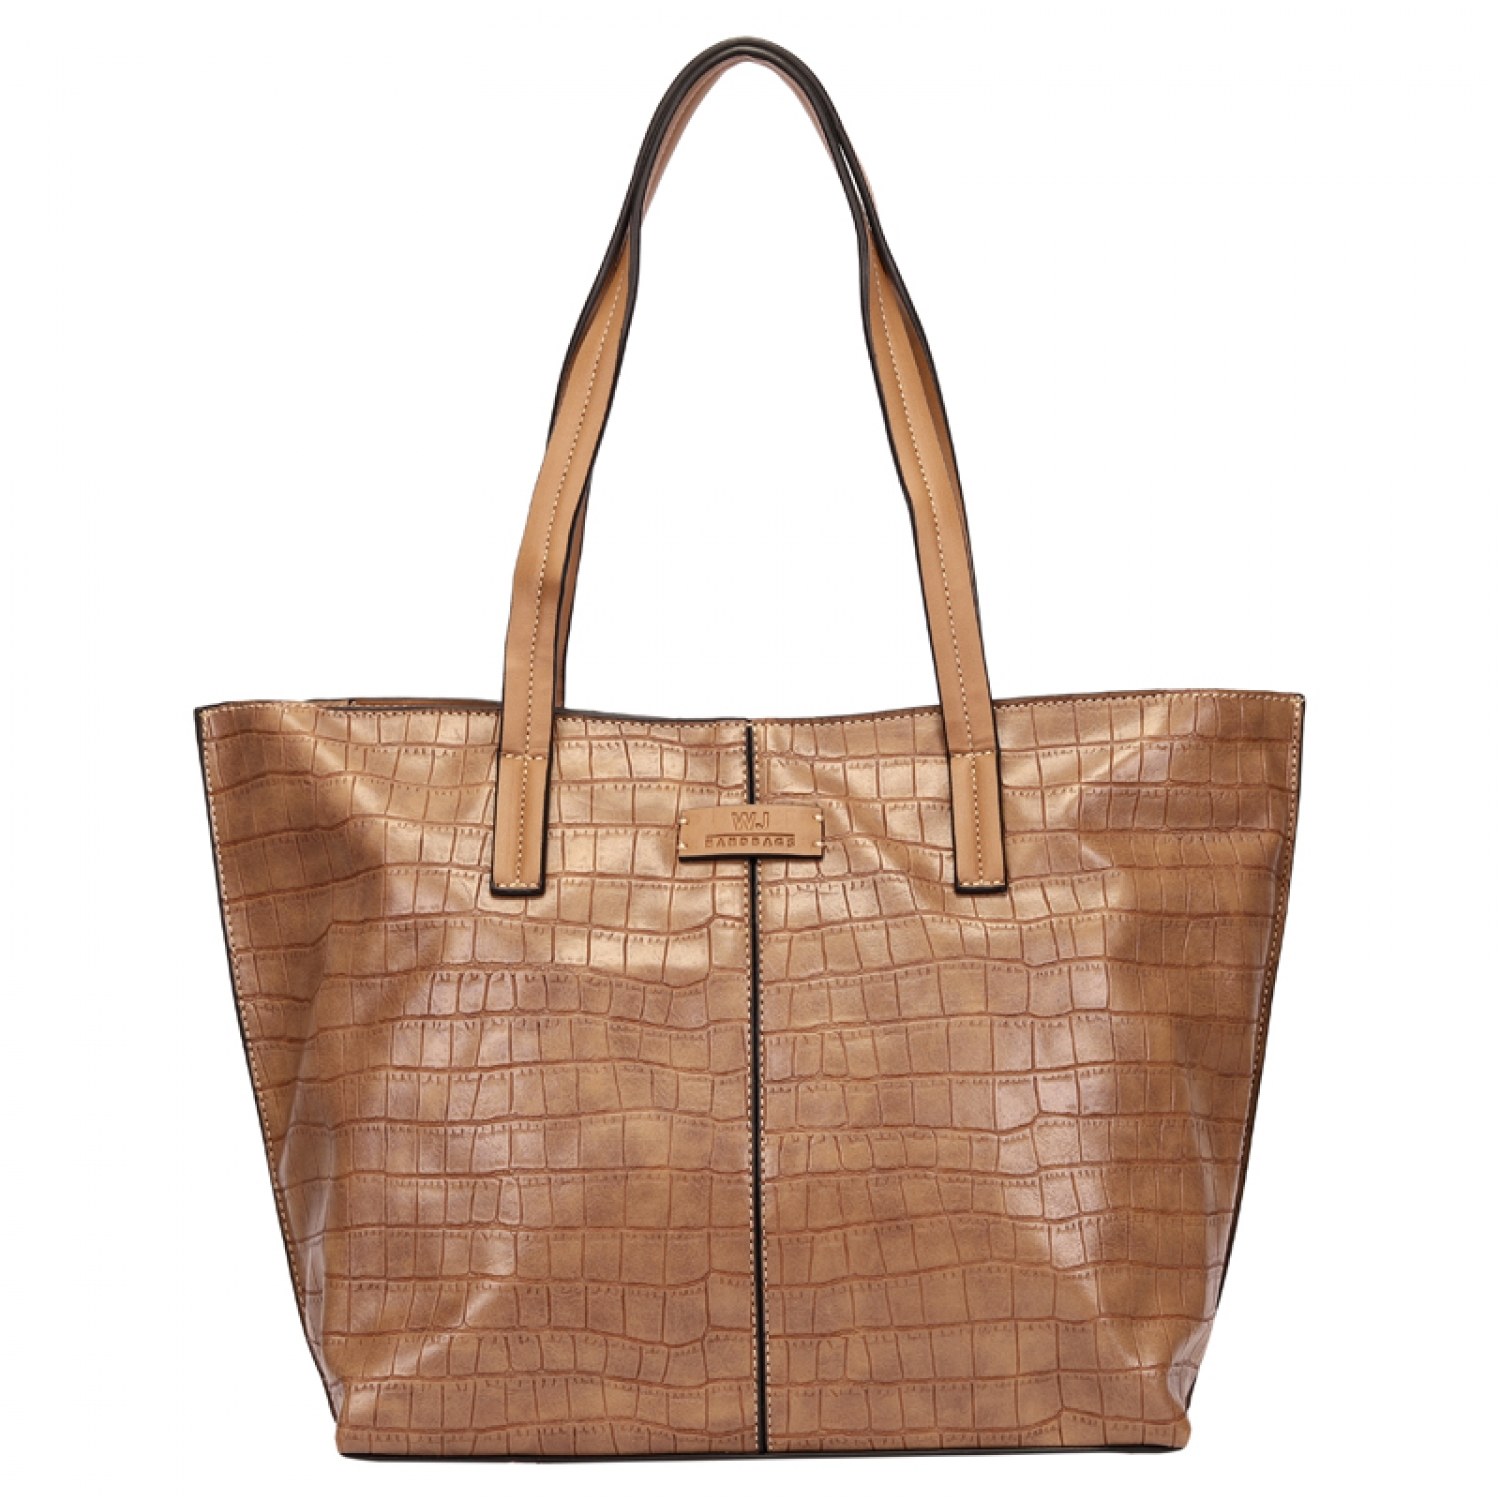 BOLSA SHOPPING BAG CROCO COM RECORTE FENDI